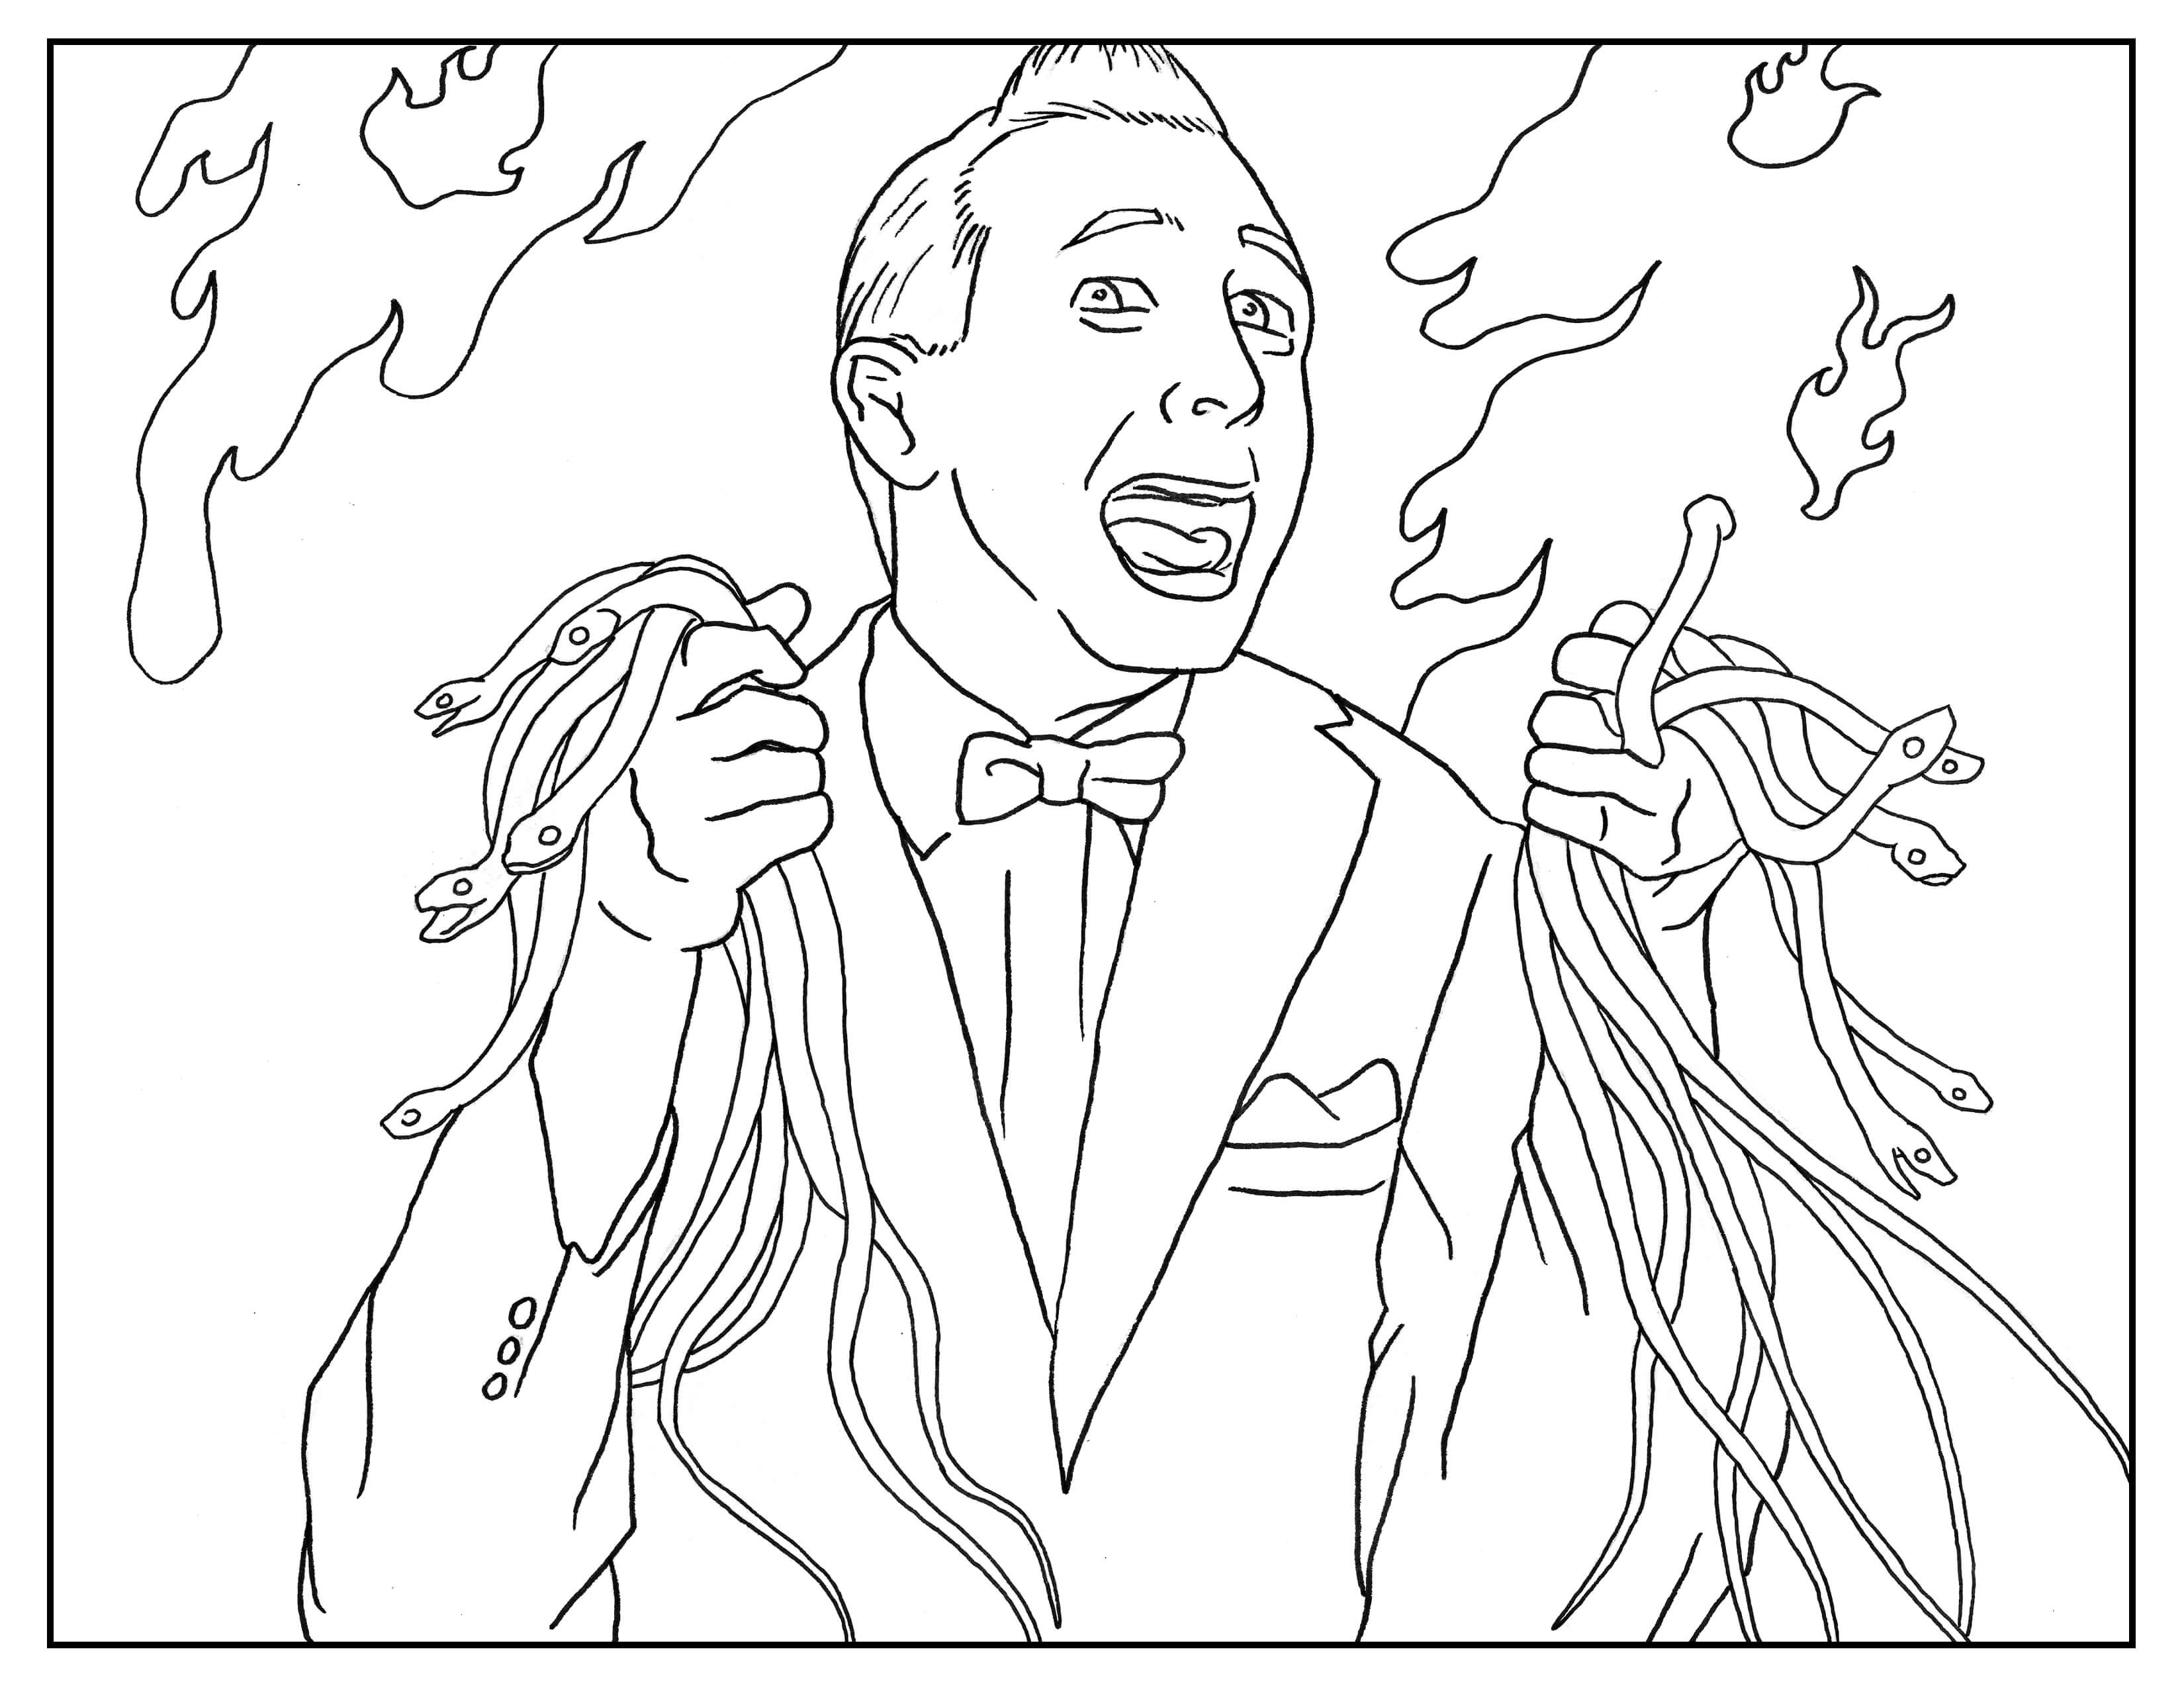 Coloring book pages halloween - Pee Wee Herman Adult Coloring Book Page